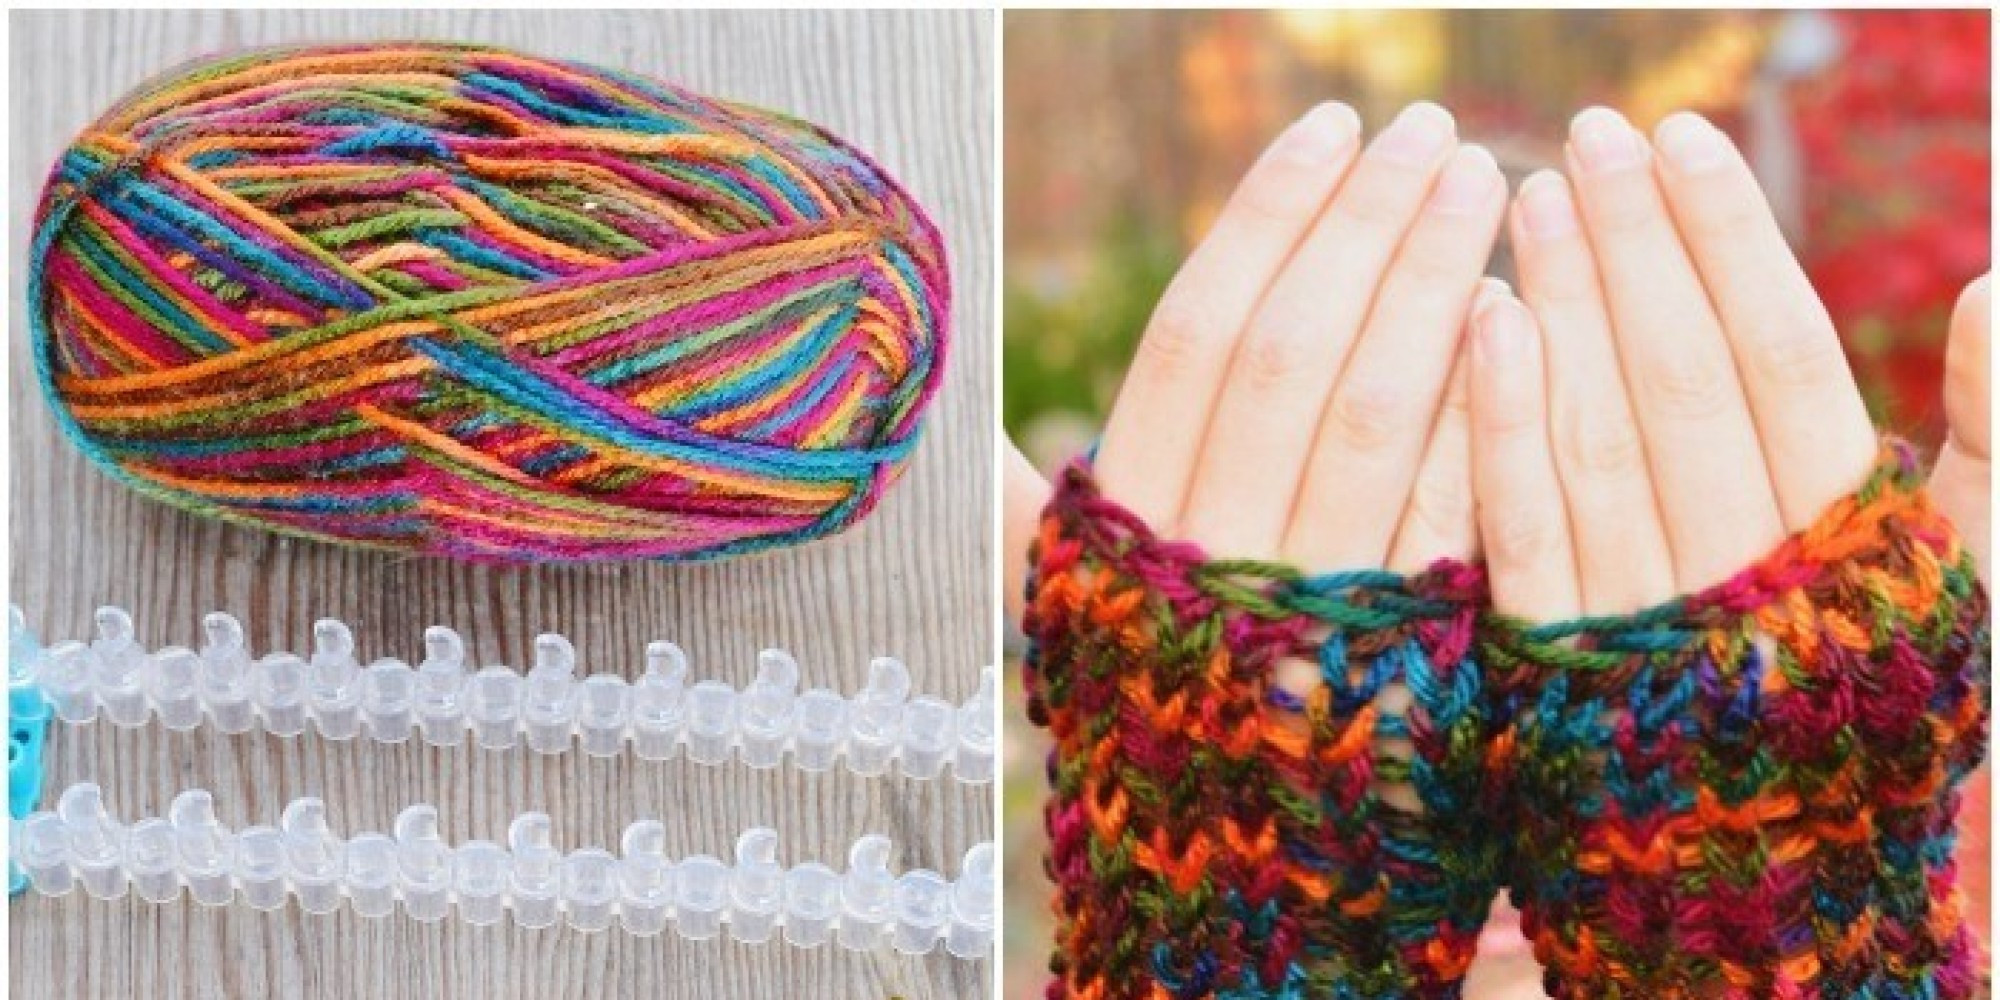 Loom Crochet New Free Knitting Loom Patterns to Keep Kids Busy Of New 42 Pictures Loom Crochet